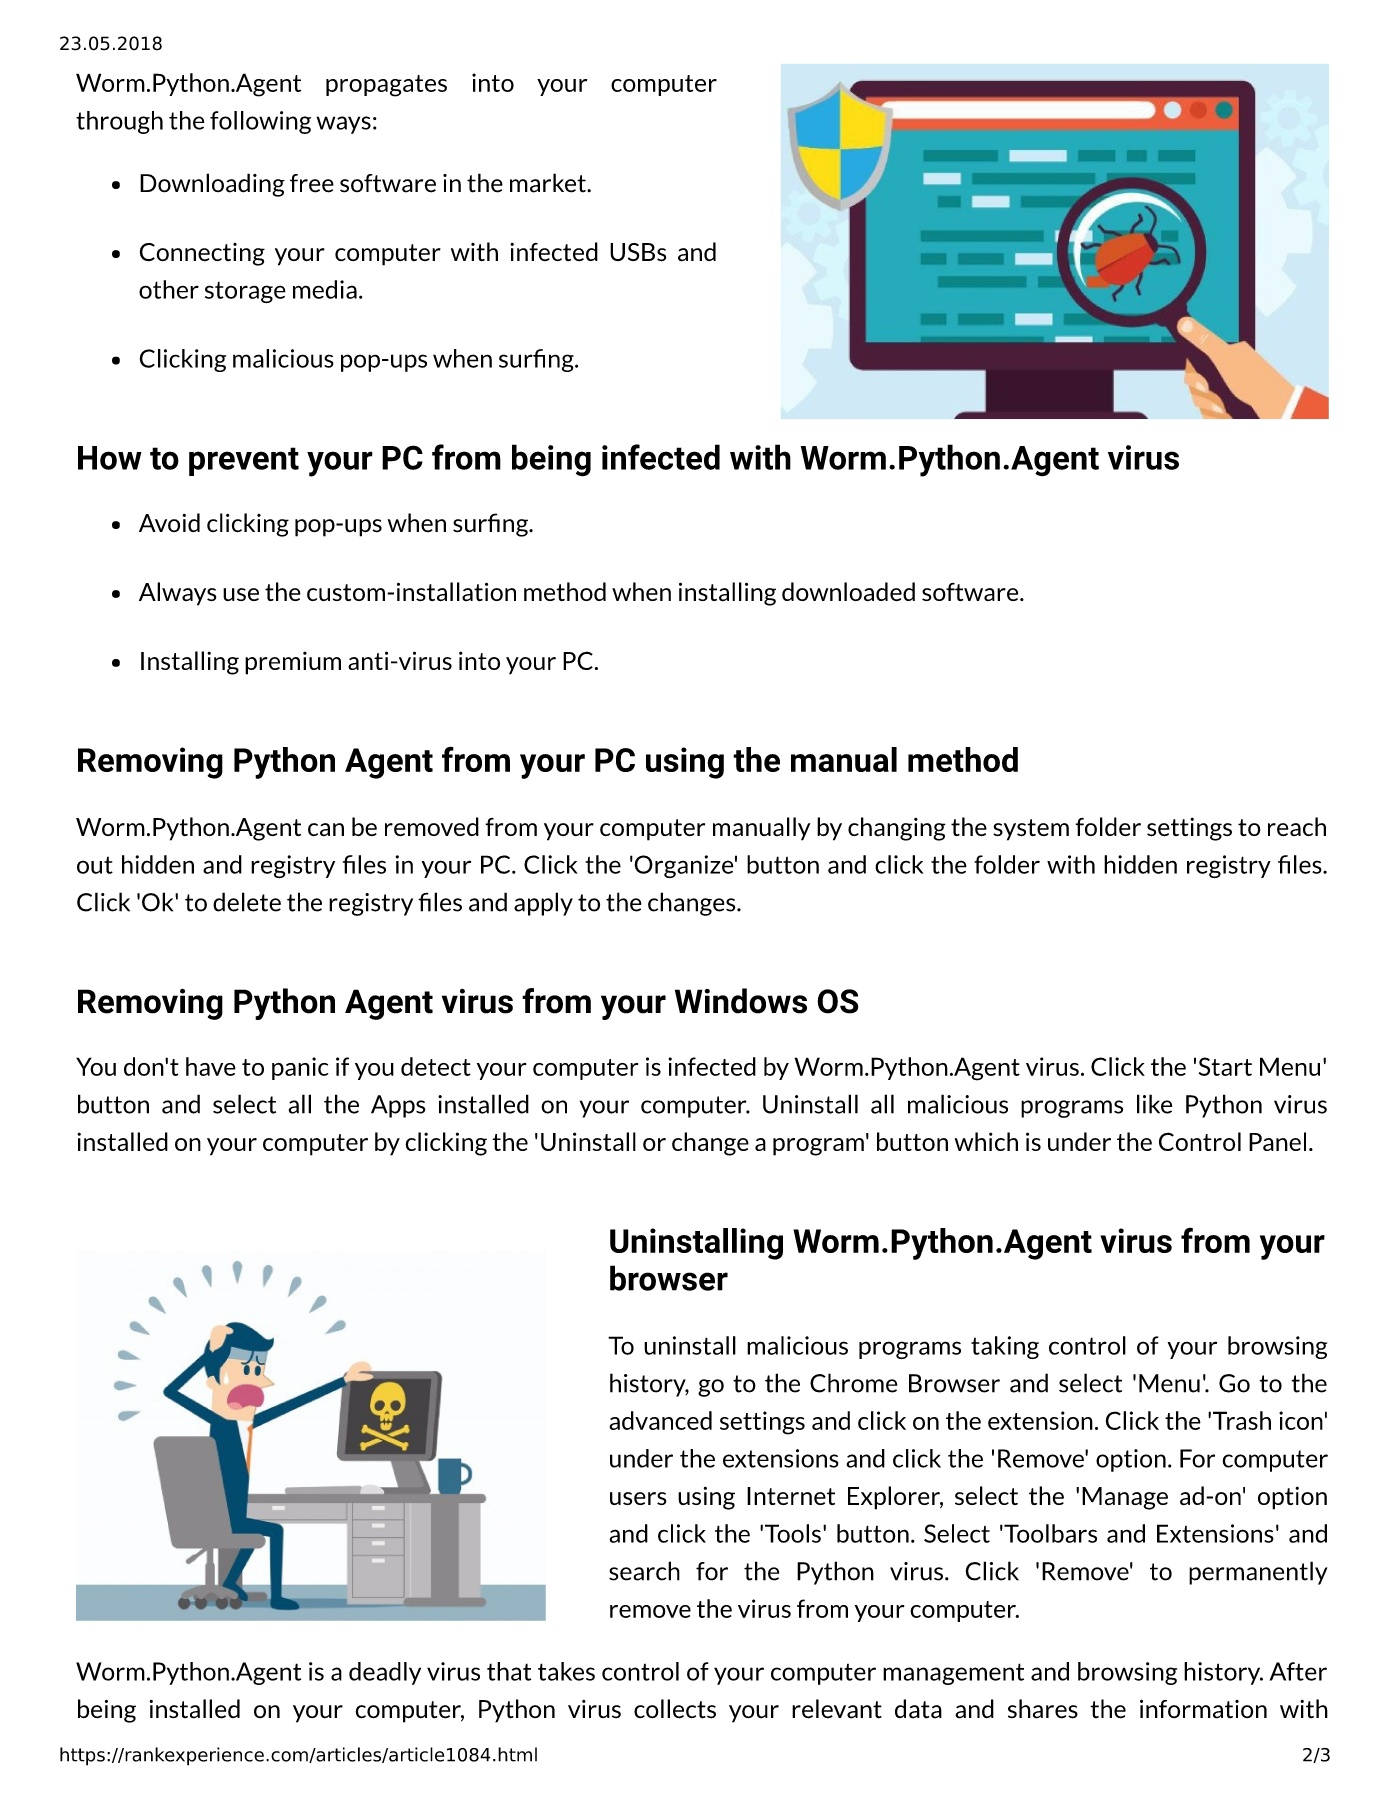 Semalt: Persuasive Tips On How To Remove Deadly Python Agent From